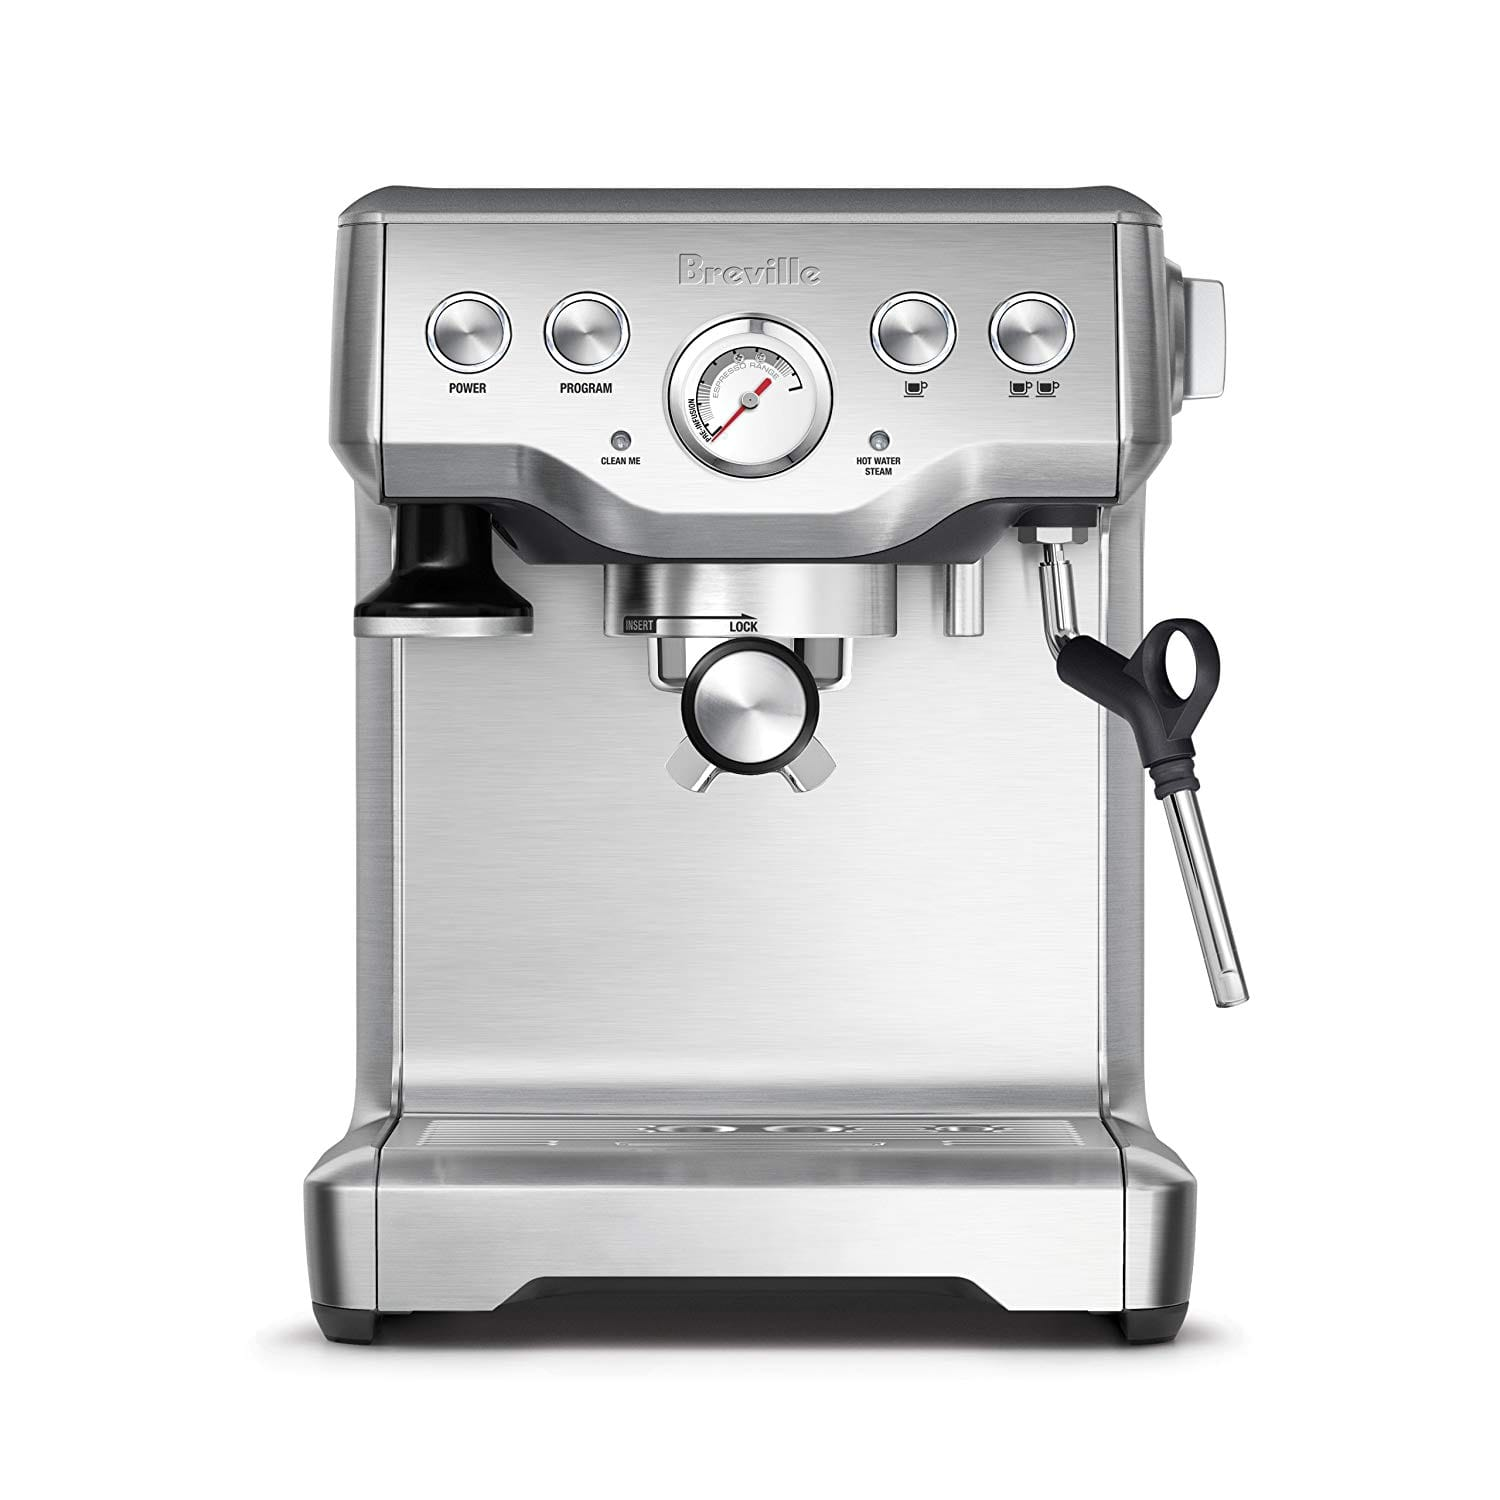 Breville BES840XL/A the Infuser Espresso Machine - Stainless Steel - $369.98 at Amazon